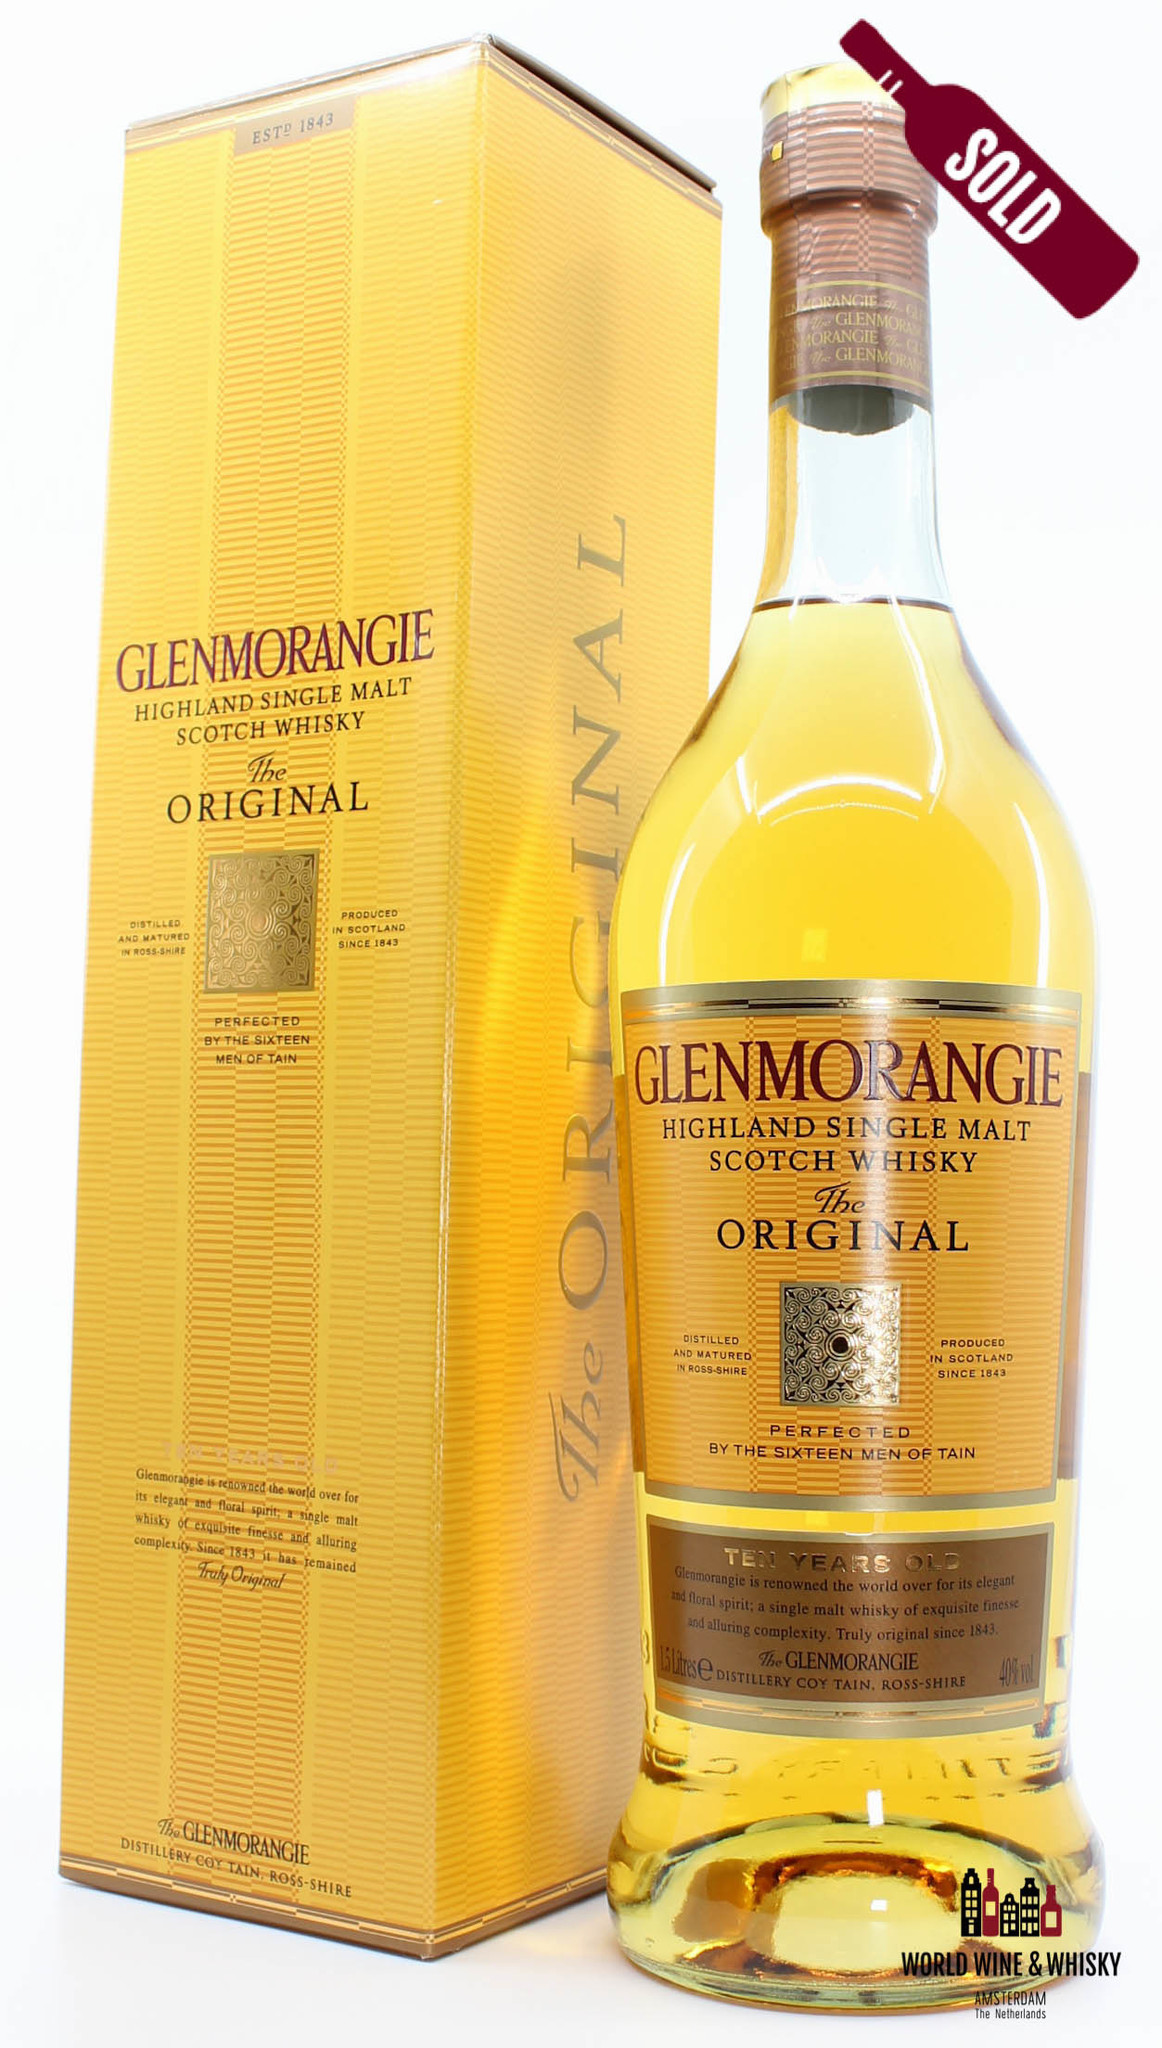 Glenmorangie 10 Years Old - The Original - Magnum 1.5 Litres (150cl)